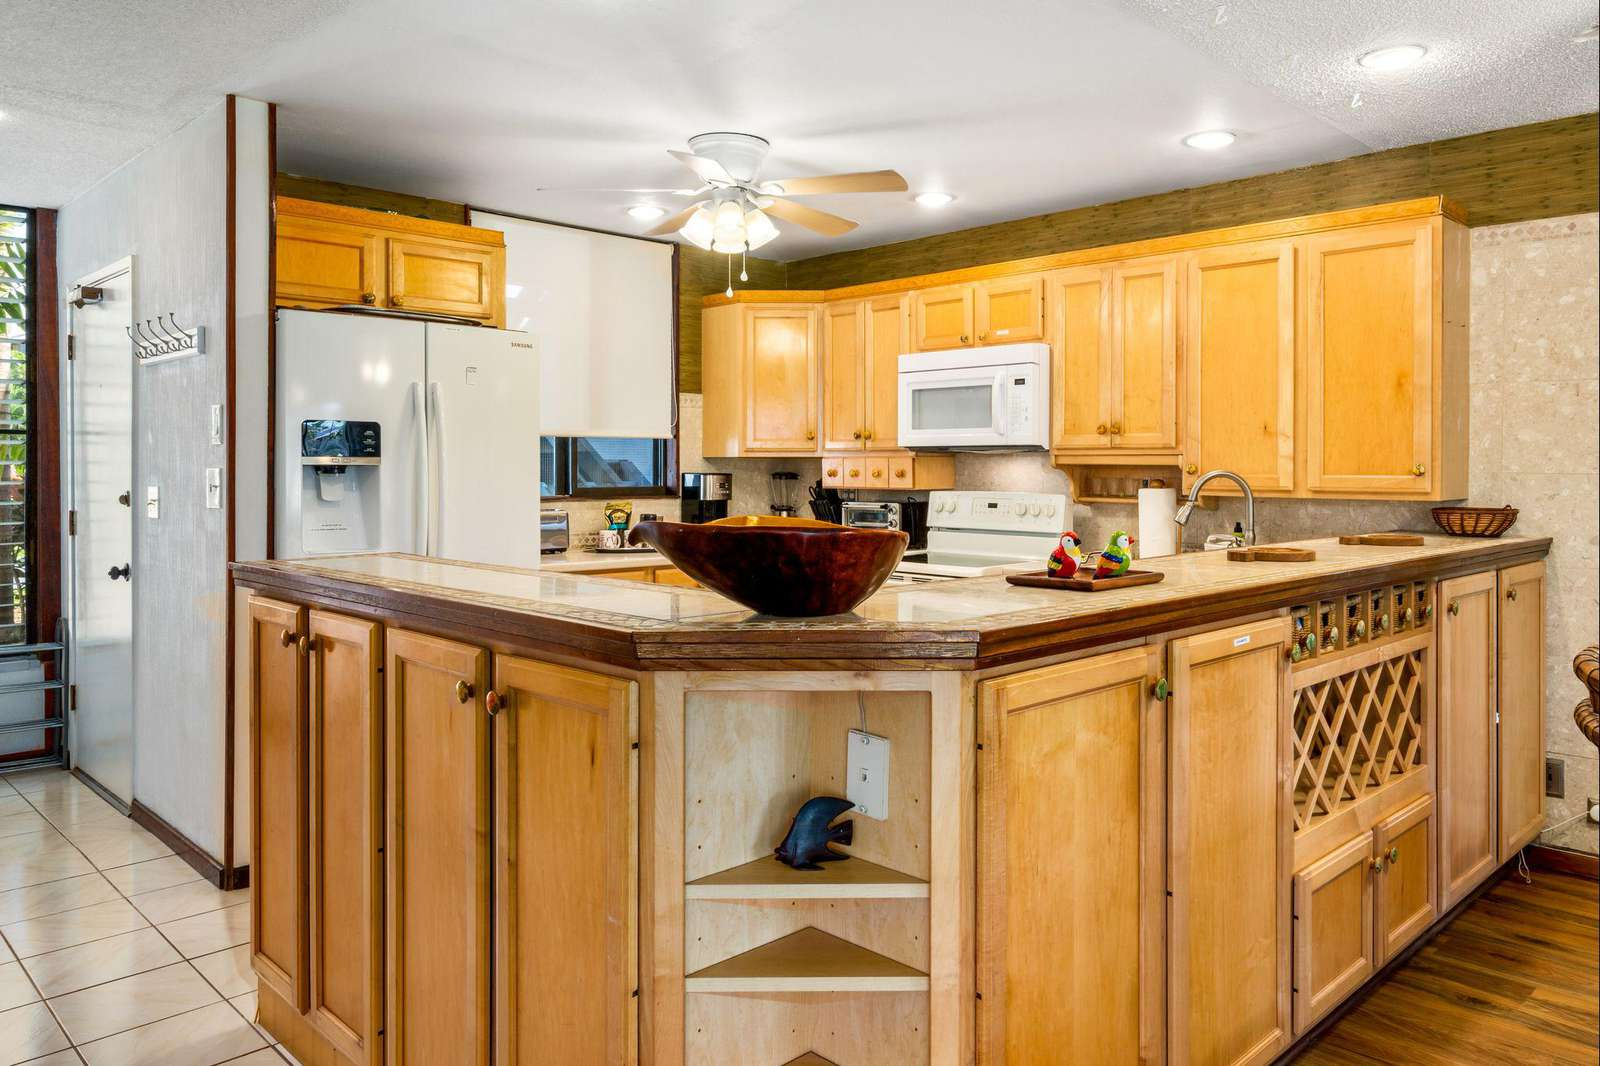 Large kitchen with lots of cabinets!